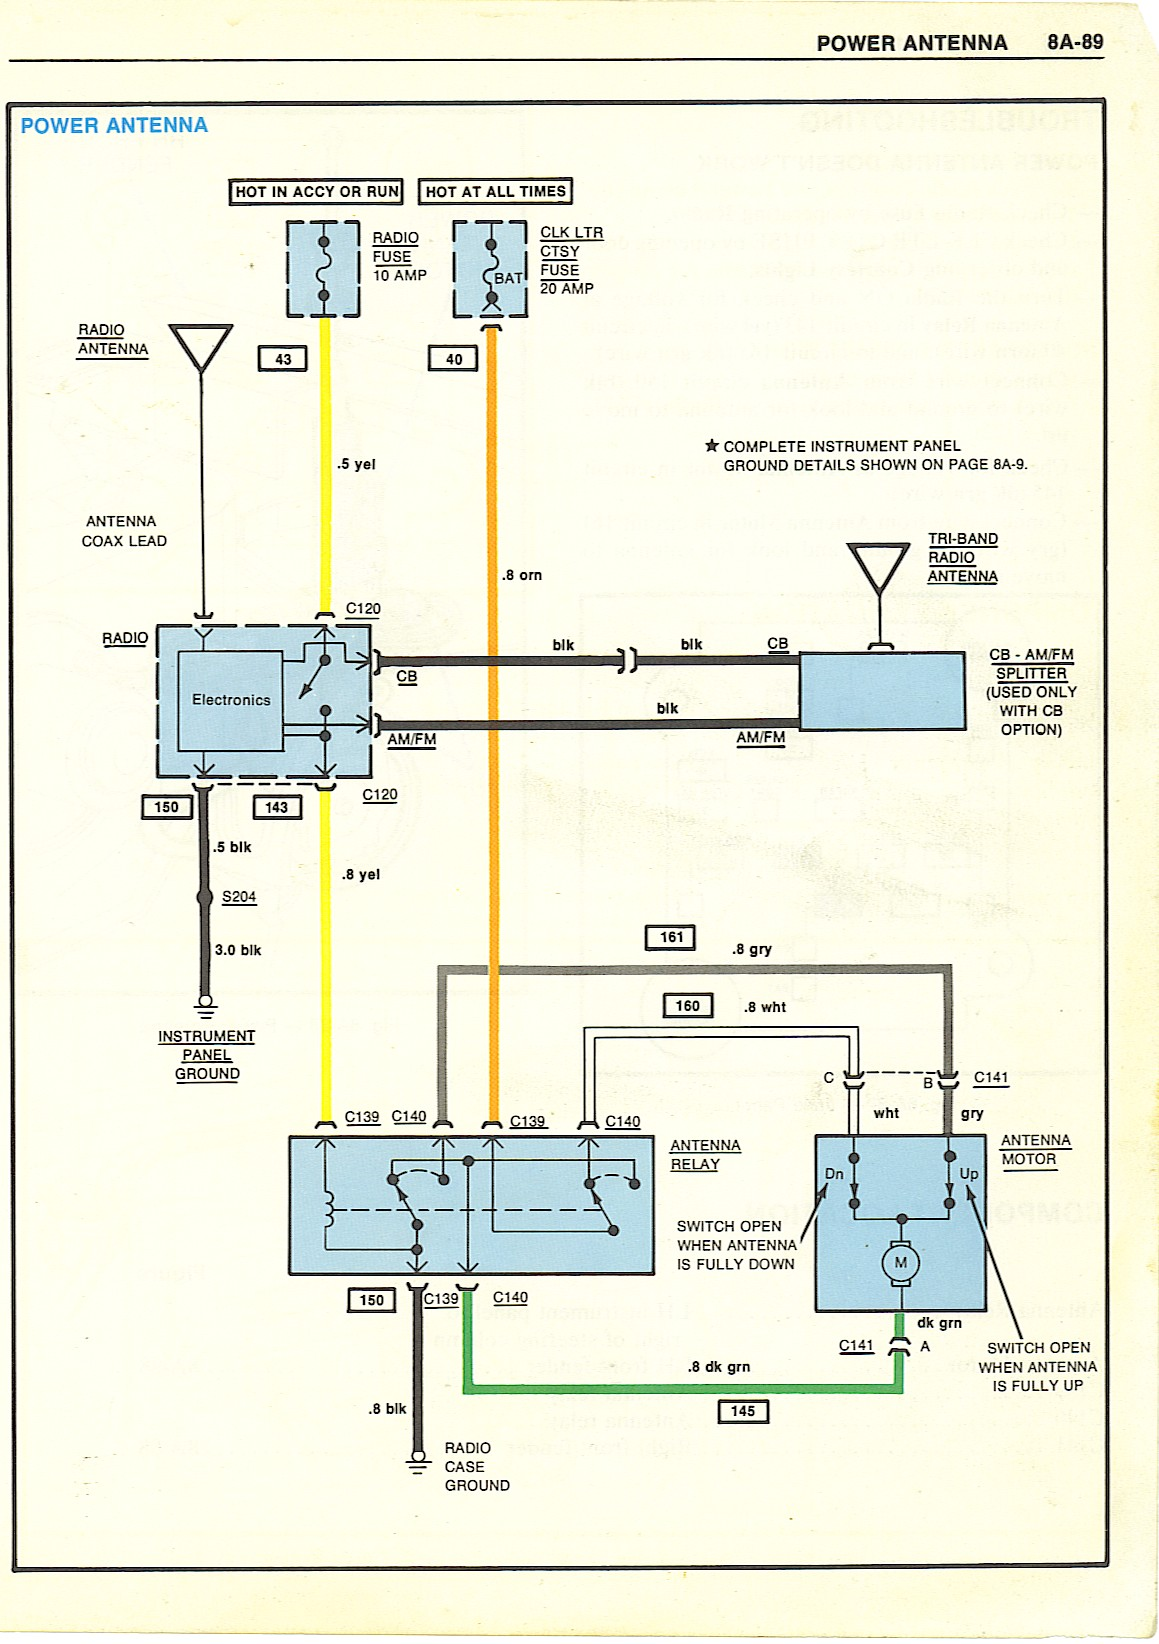 PowerAntenna wiring diagrams 1984 buick lesabre radio wiring diagram at alyssarenee.co